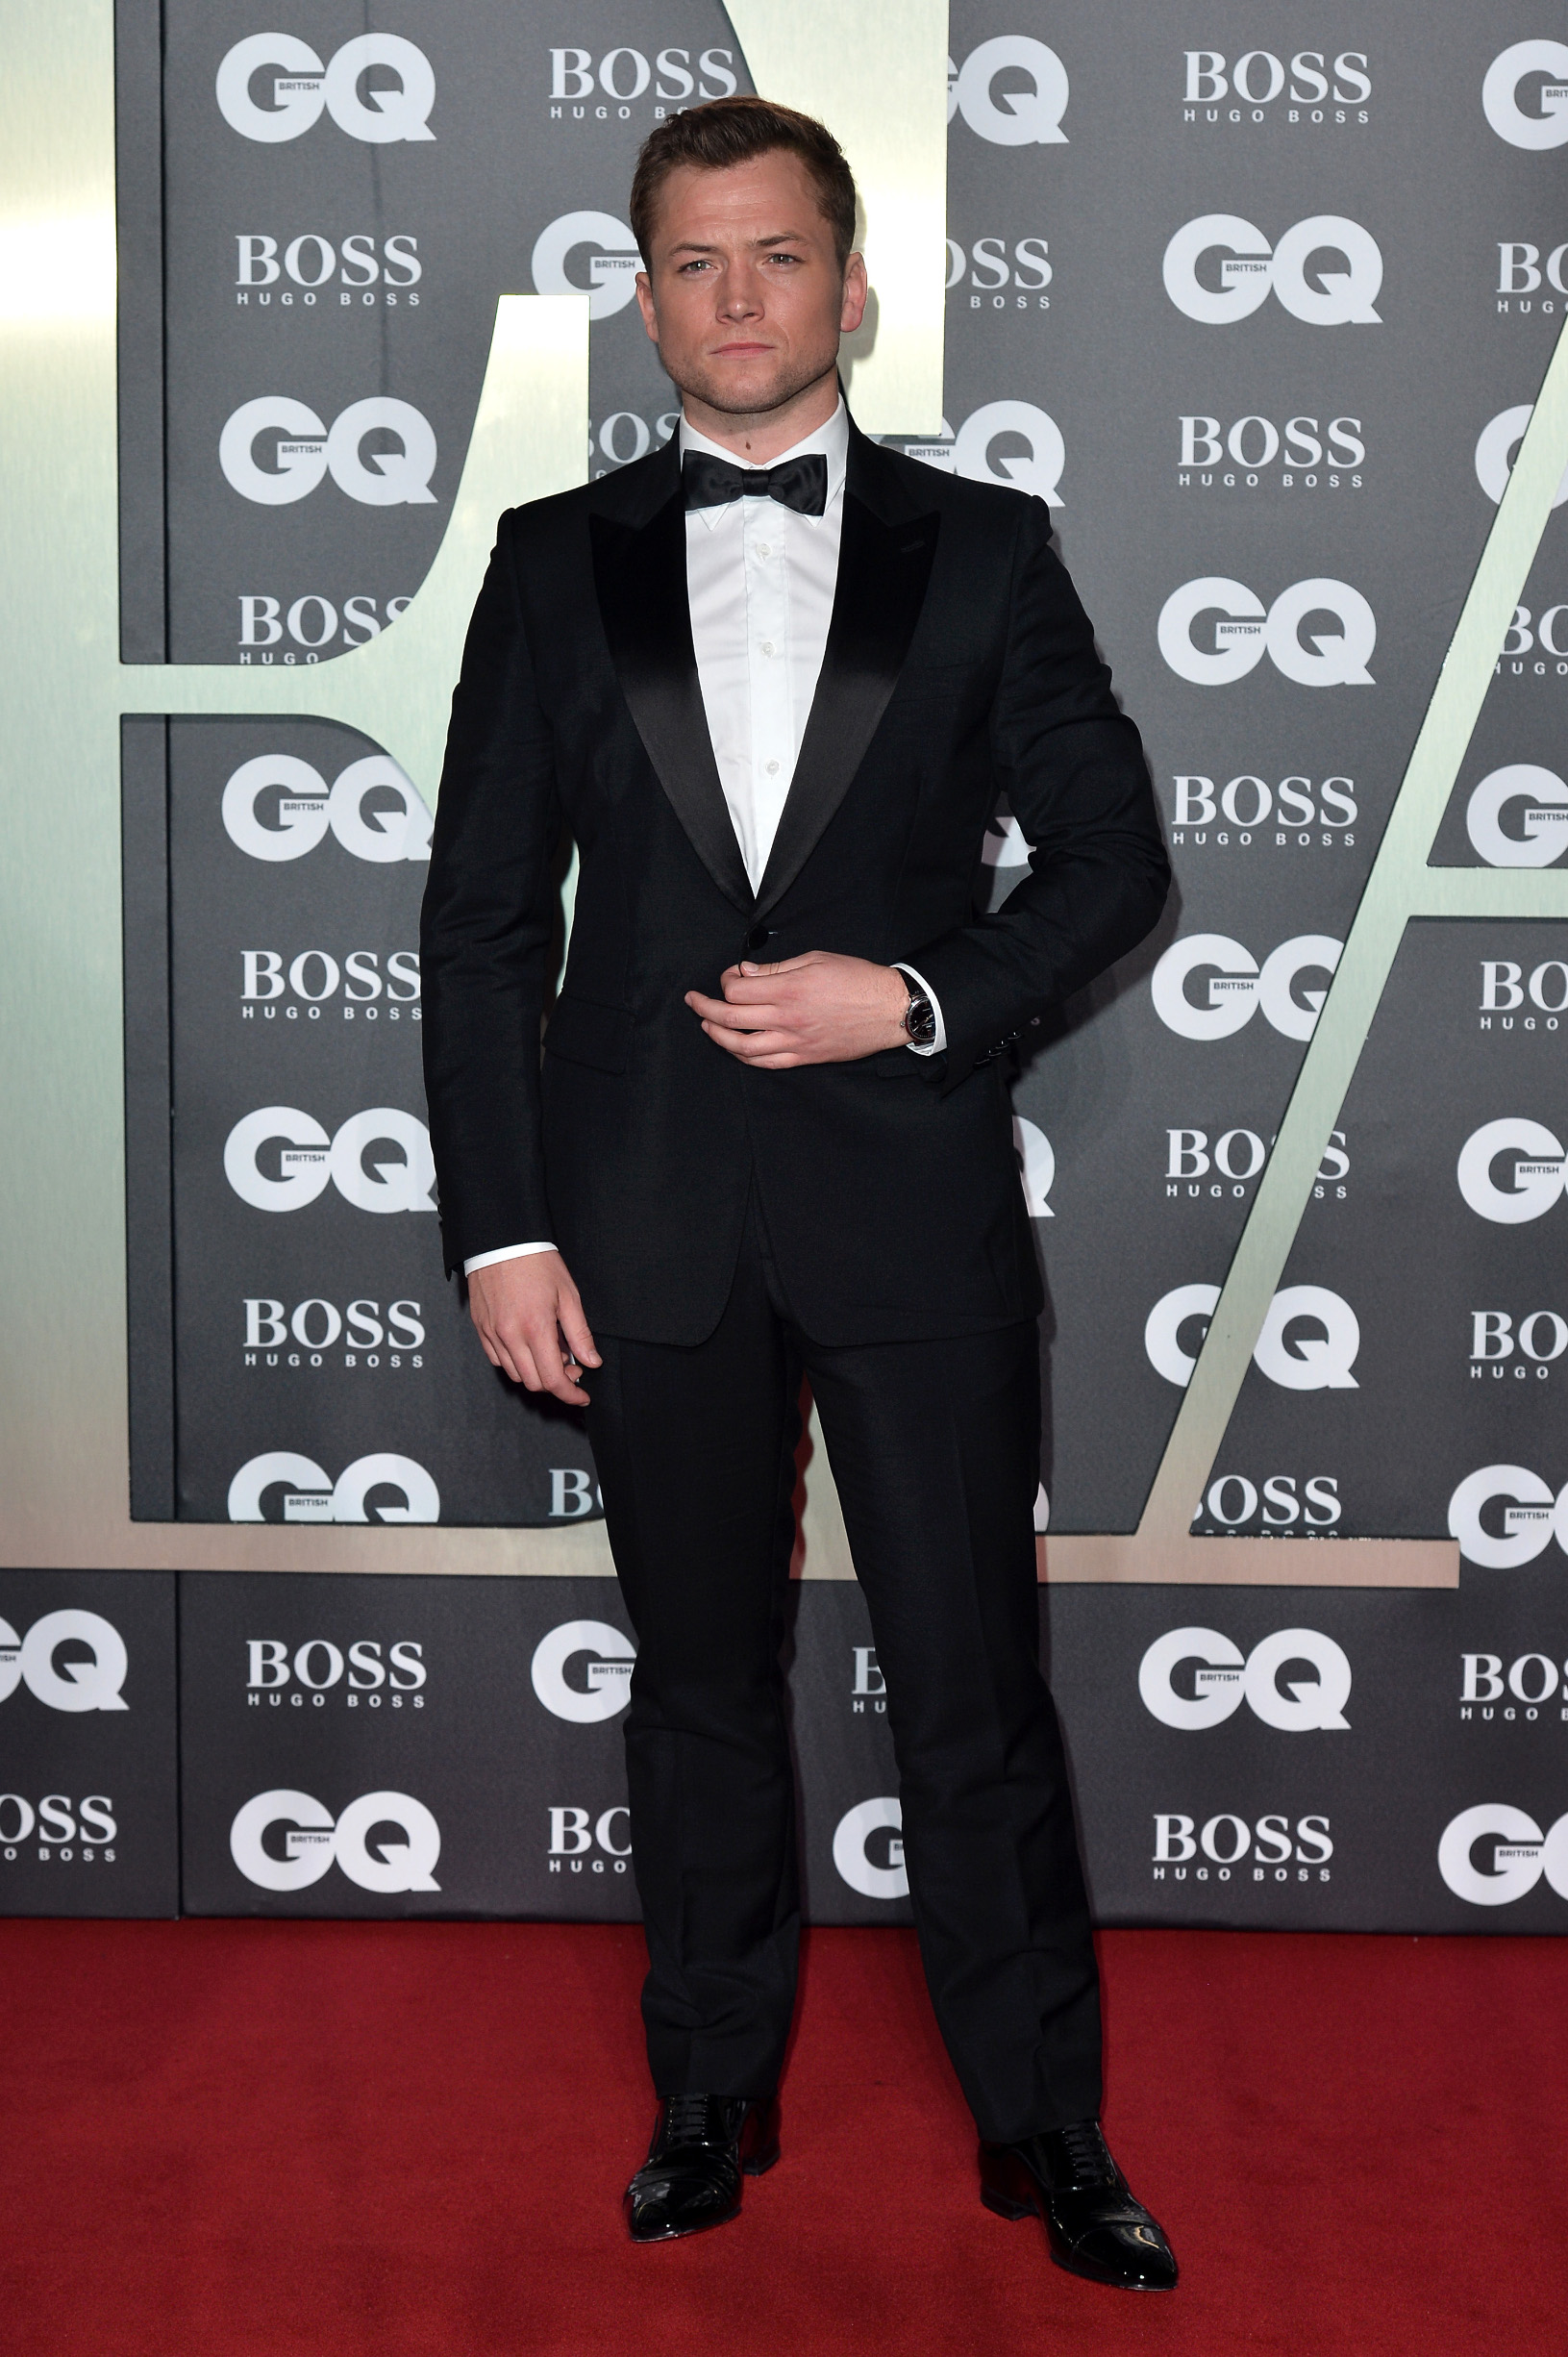 LONDON, ENGLAND - SEPTEMBER 03: Taron Egerton attends the GQ Men Of The Year Awards 2019 at Tate Modern on September 03, 2019 in London, England. (Photo by Jeff Spicer/Getty Images)